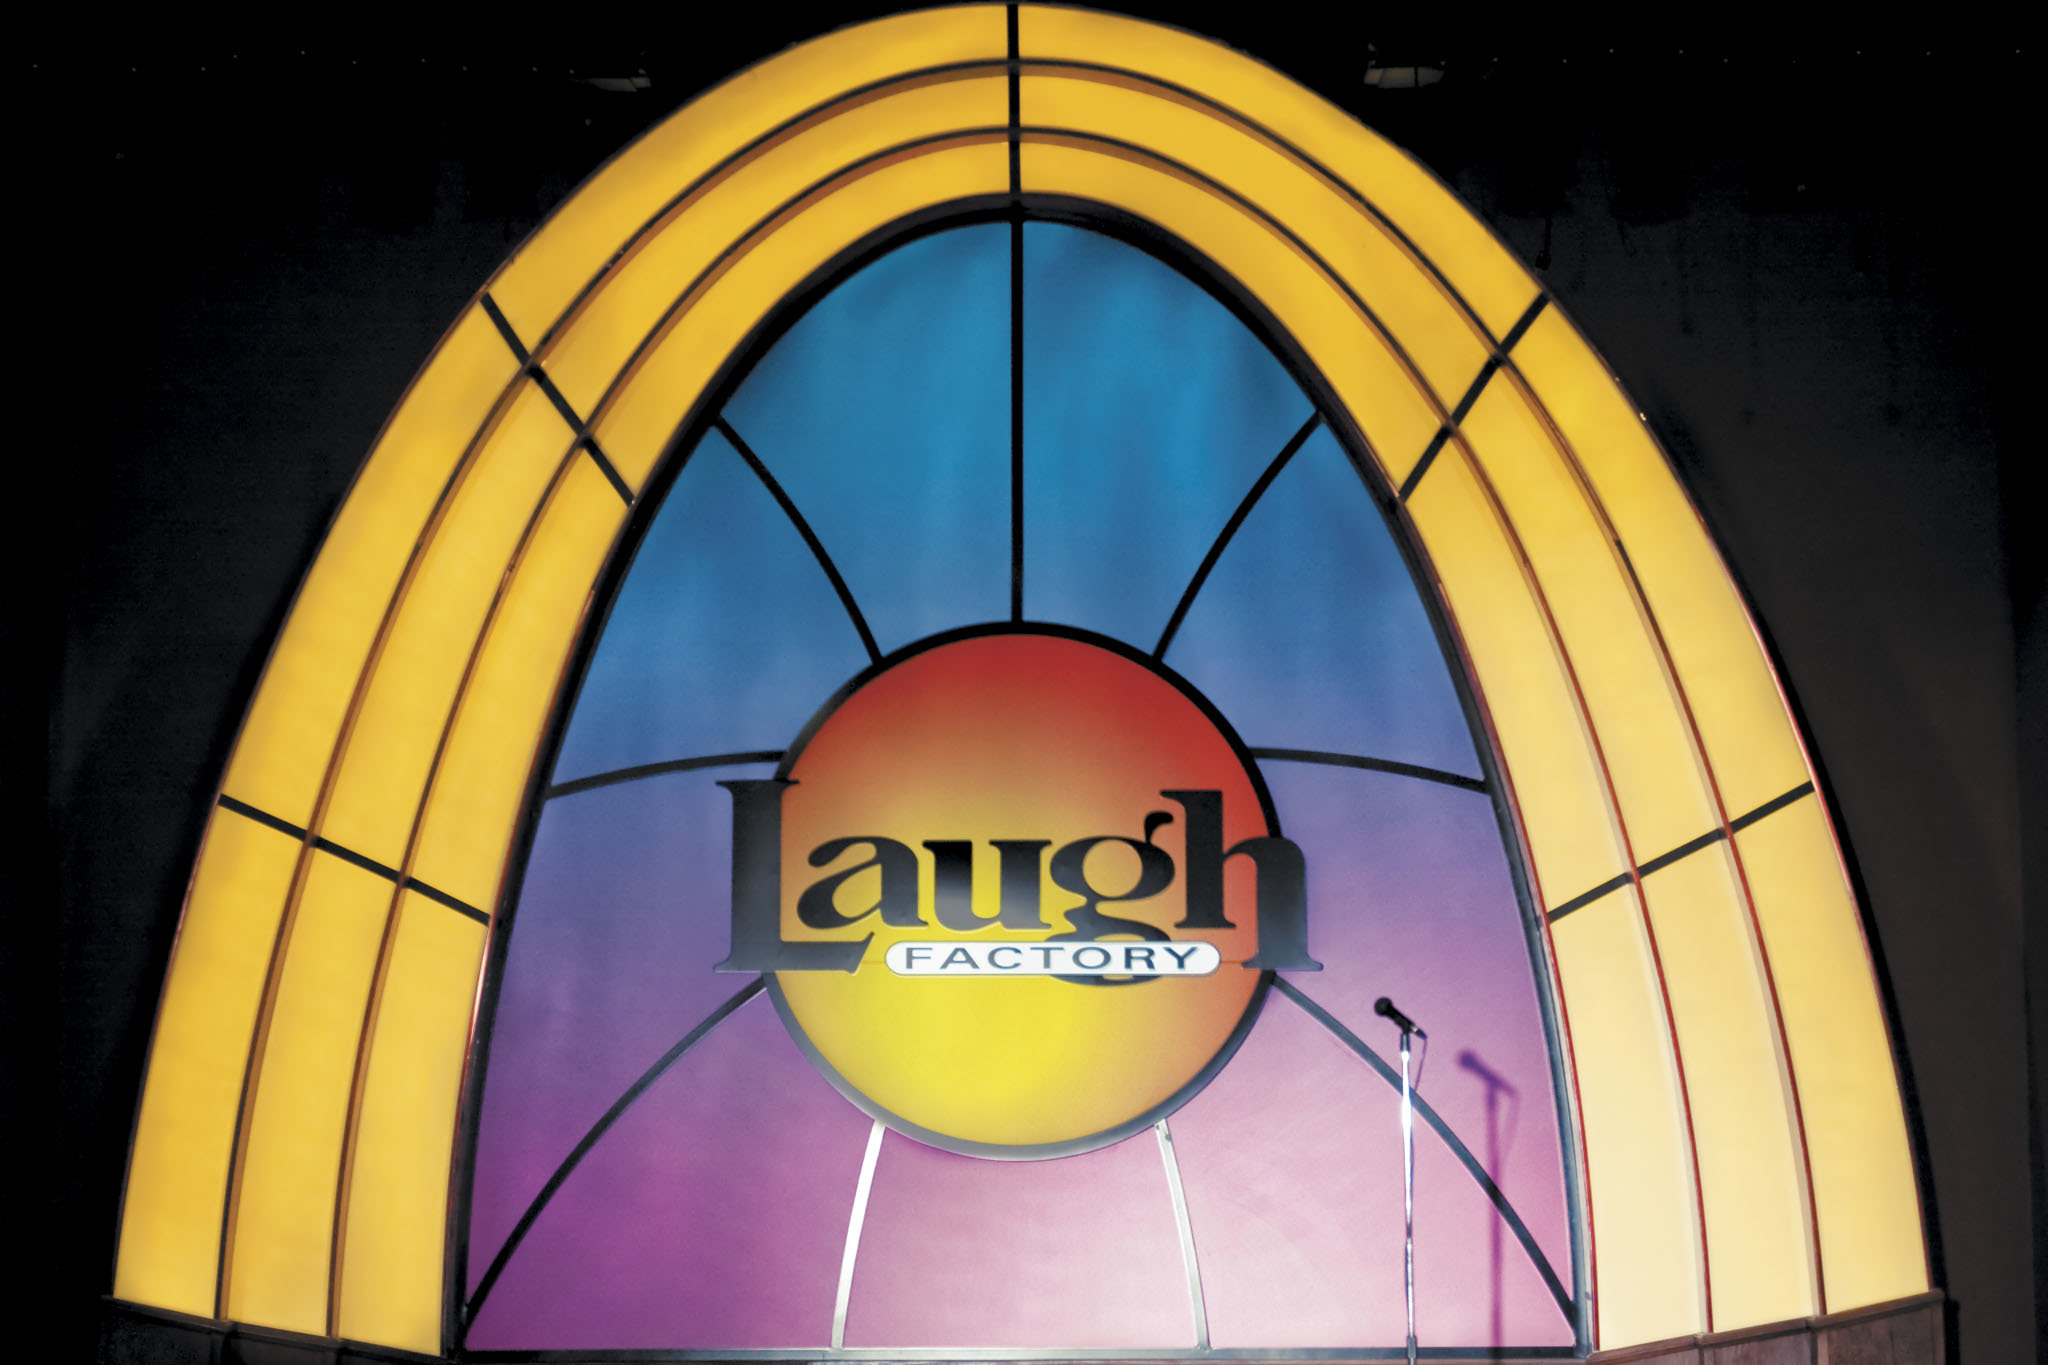 LaughFactory.venue.jpg